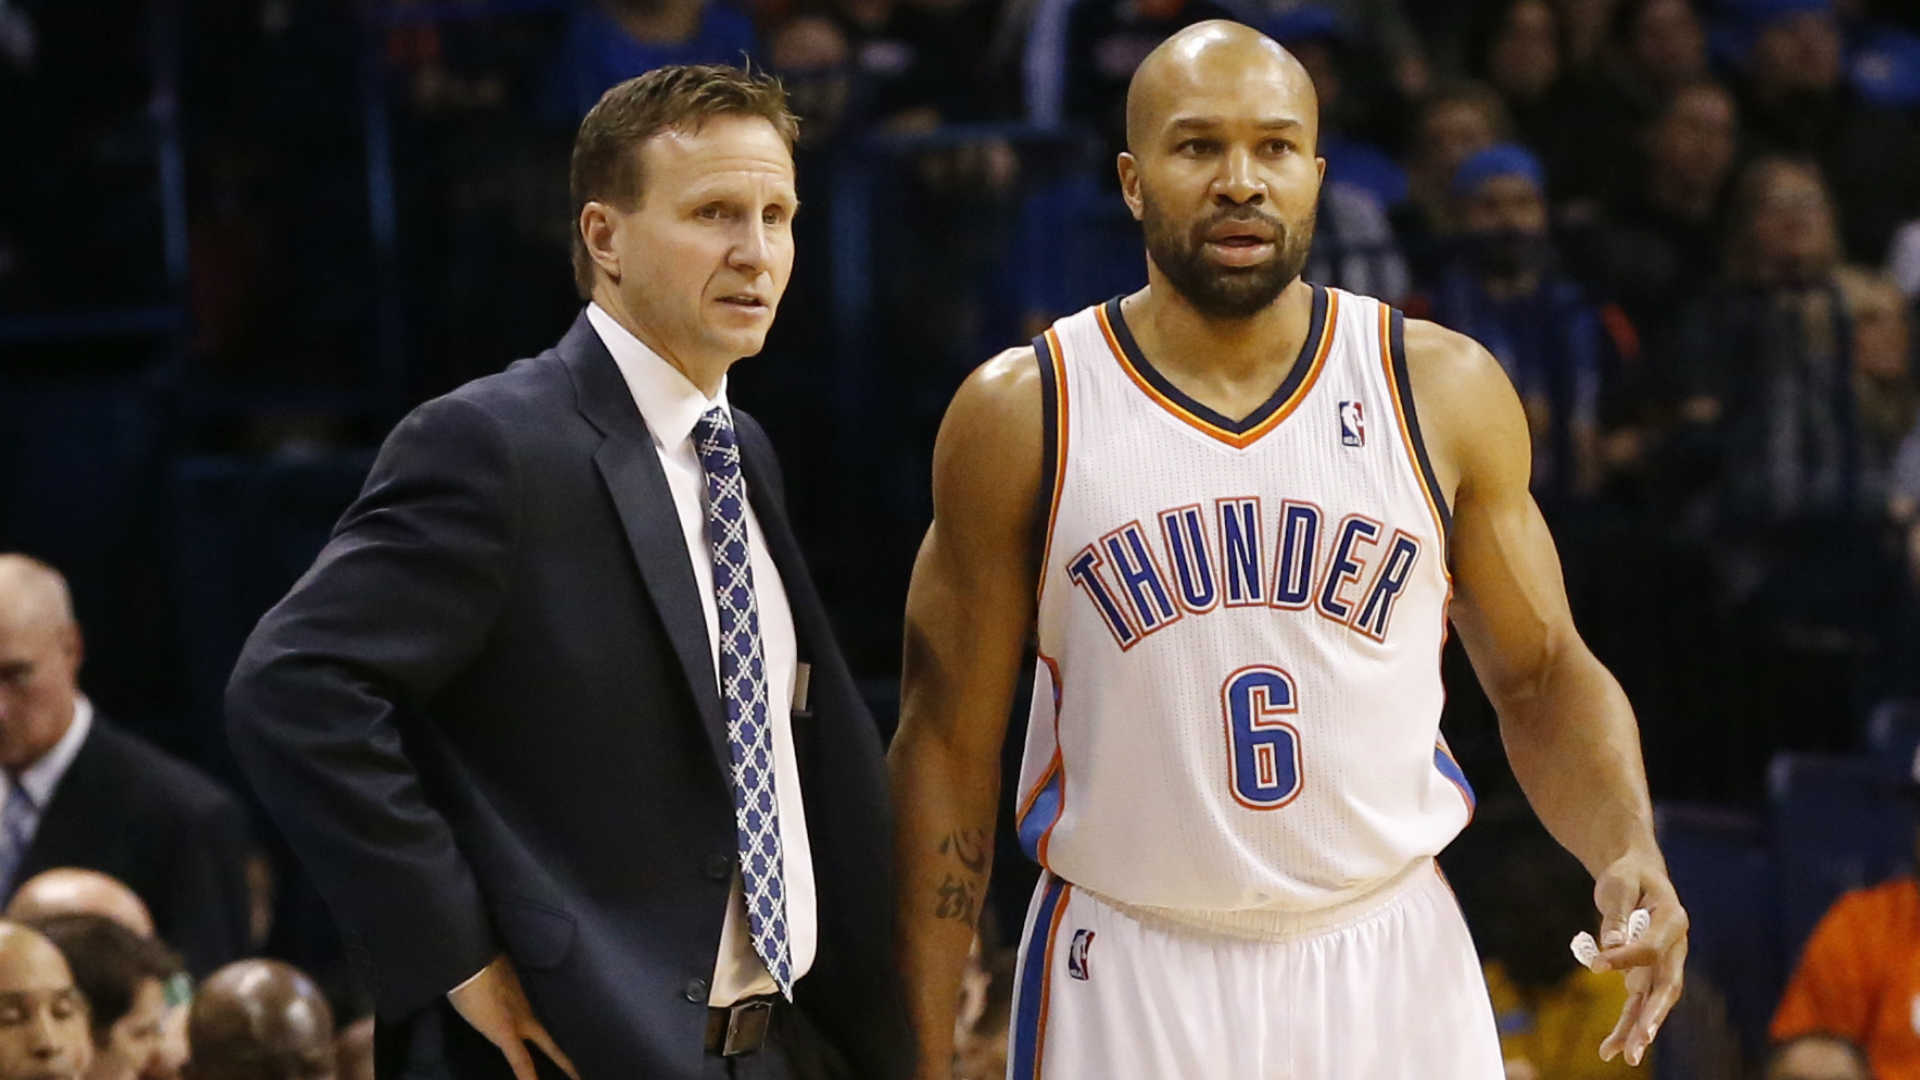 Scott Brooks-Derek Fisher-060114-AP-FTR.jpg